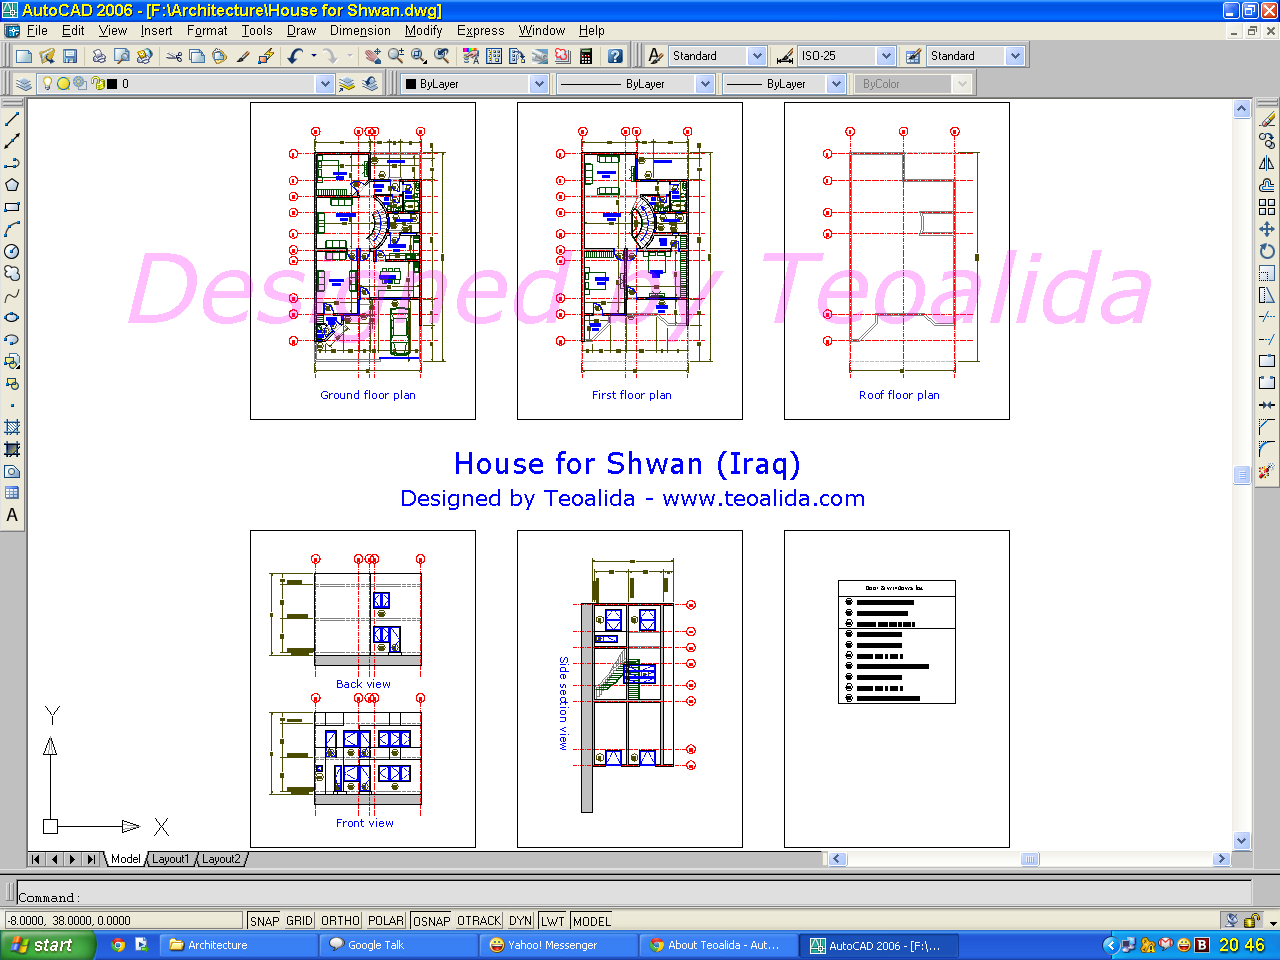 House for Shwan (Iraq)